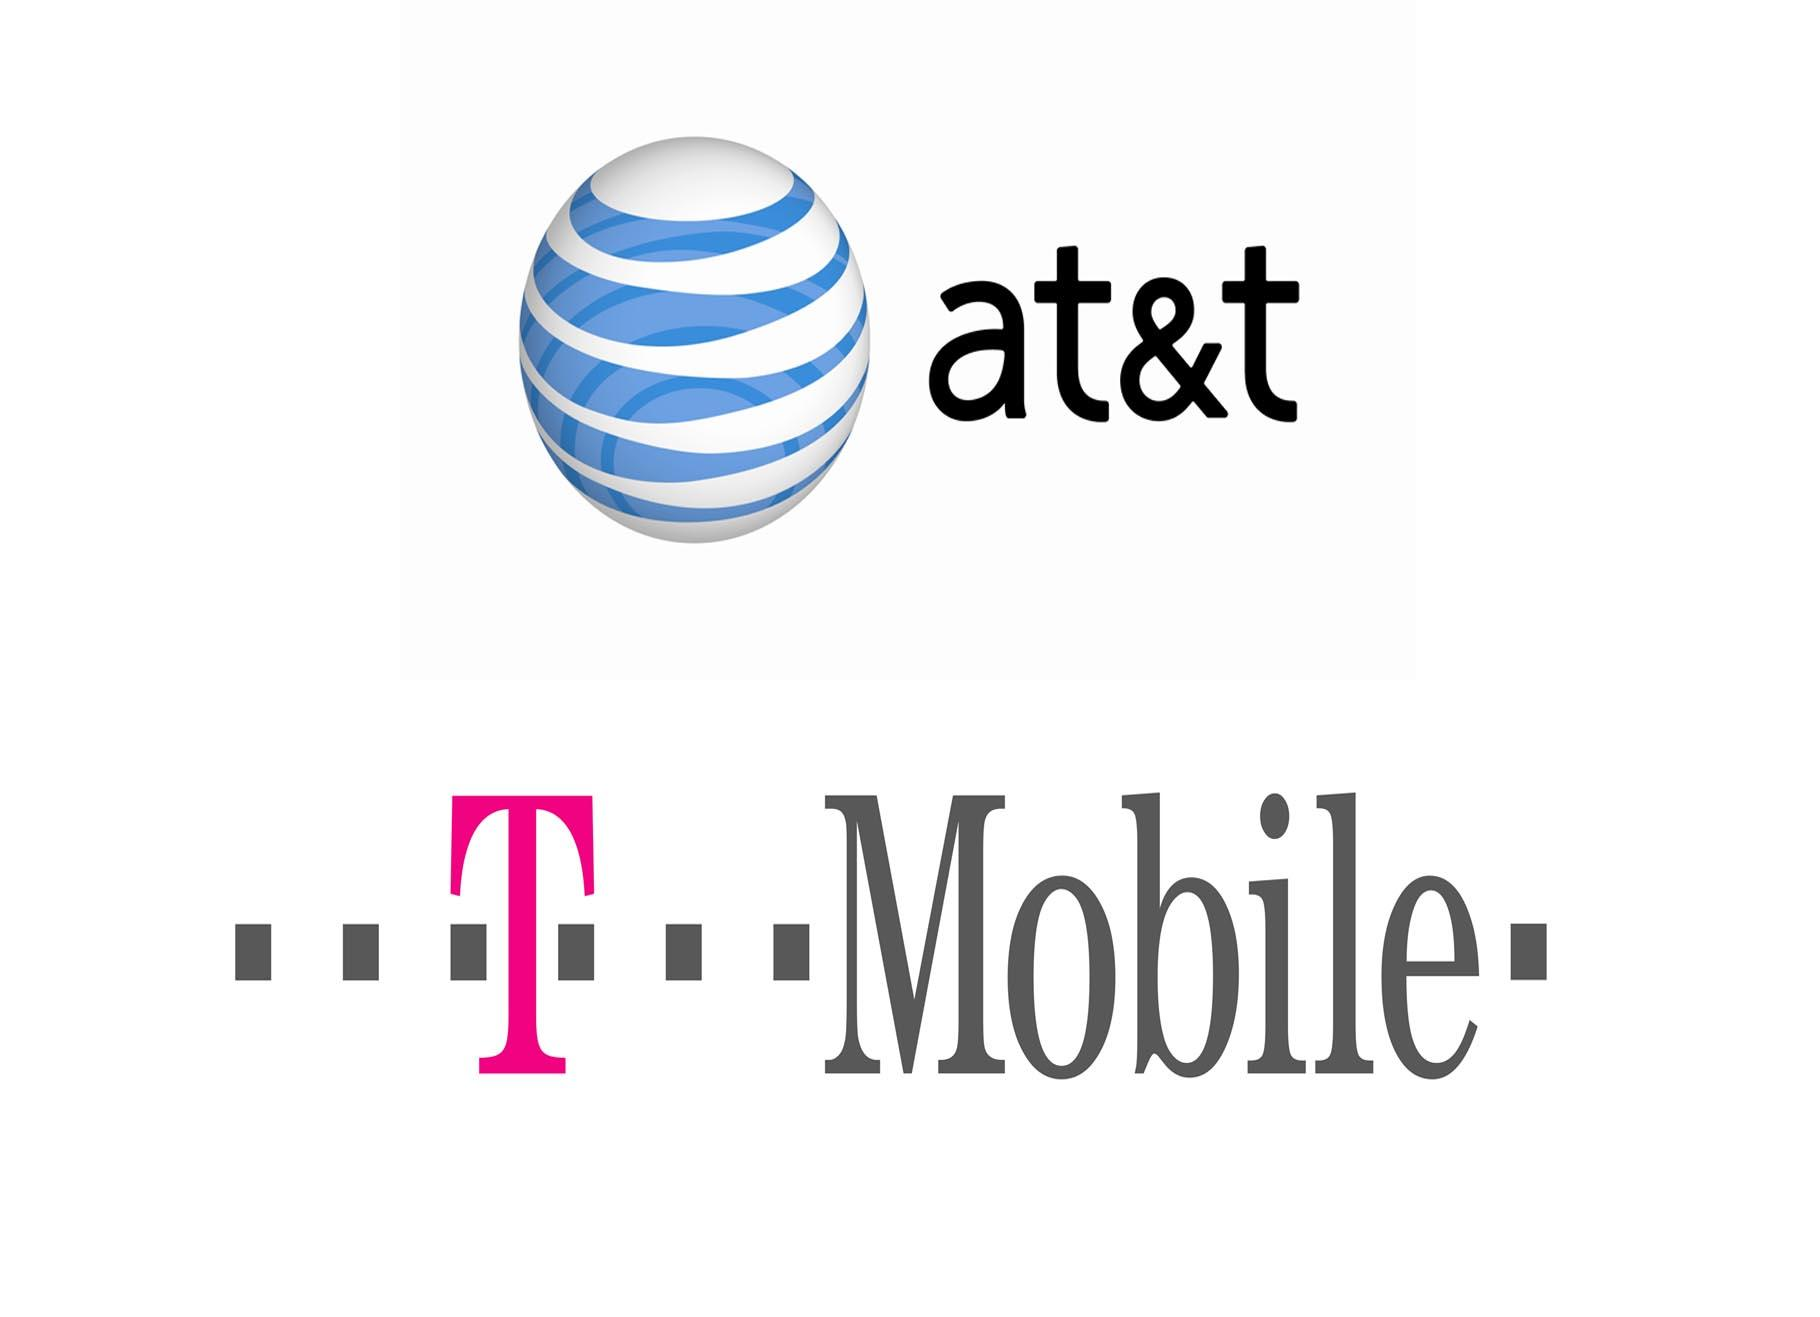 AT&T/T-Mobile Merger Opponents Mislead With Job Loss Scare